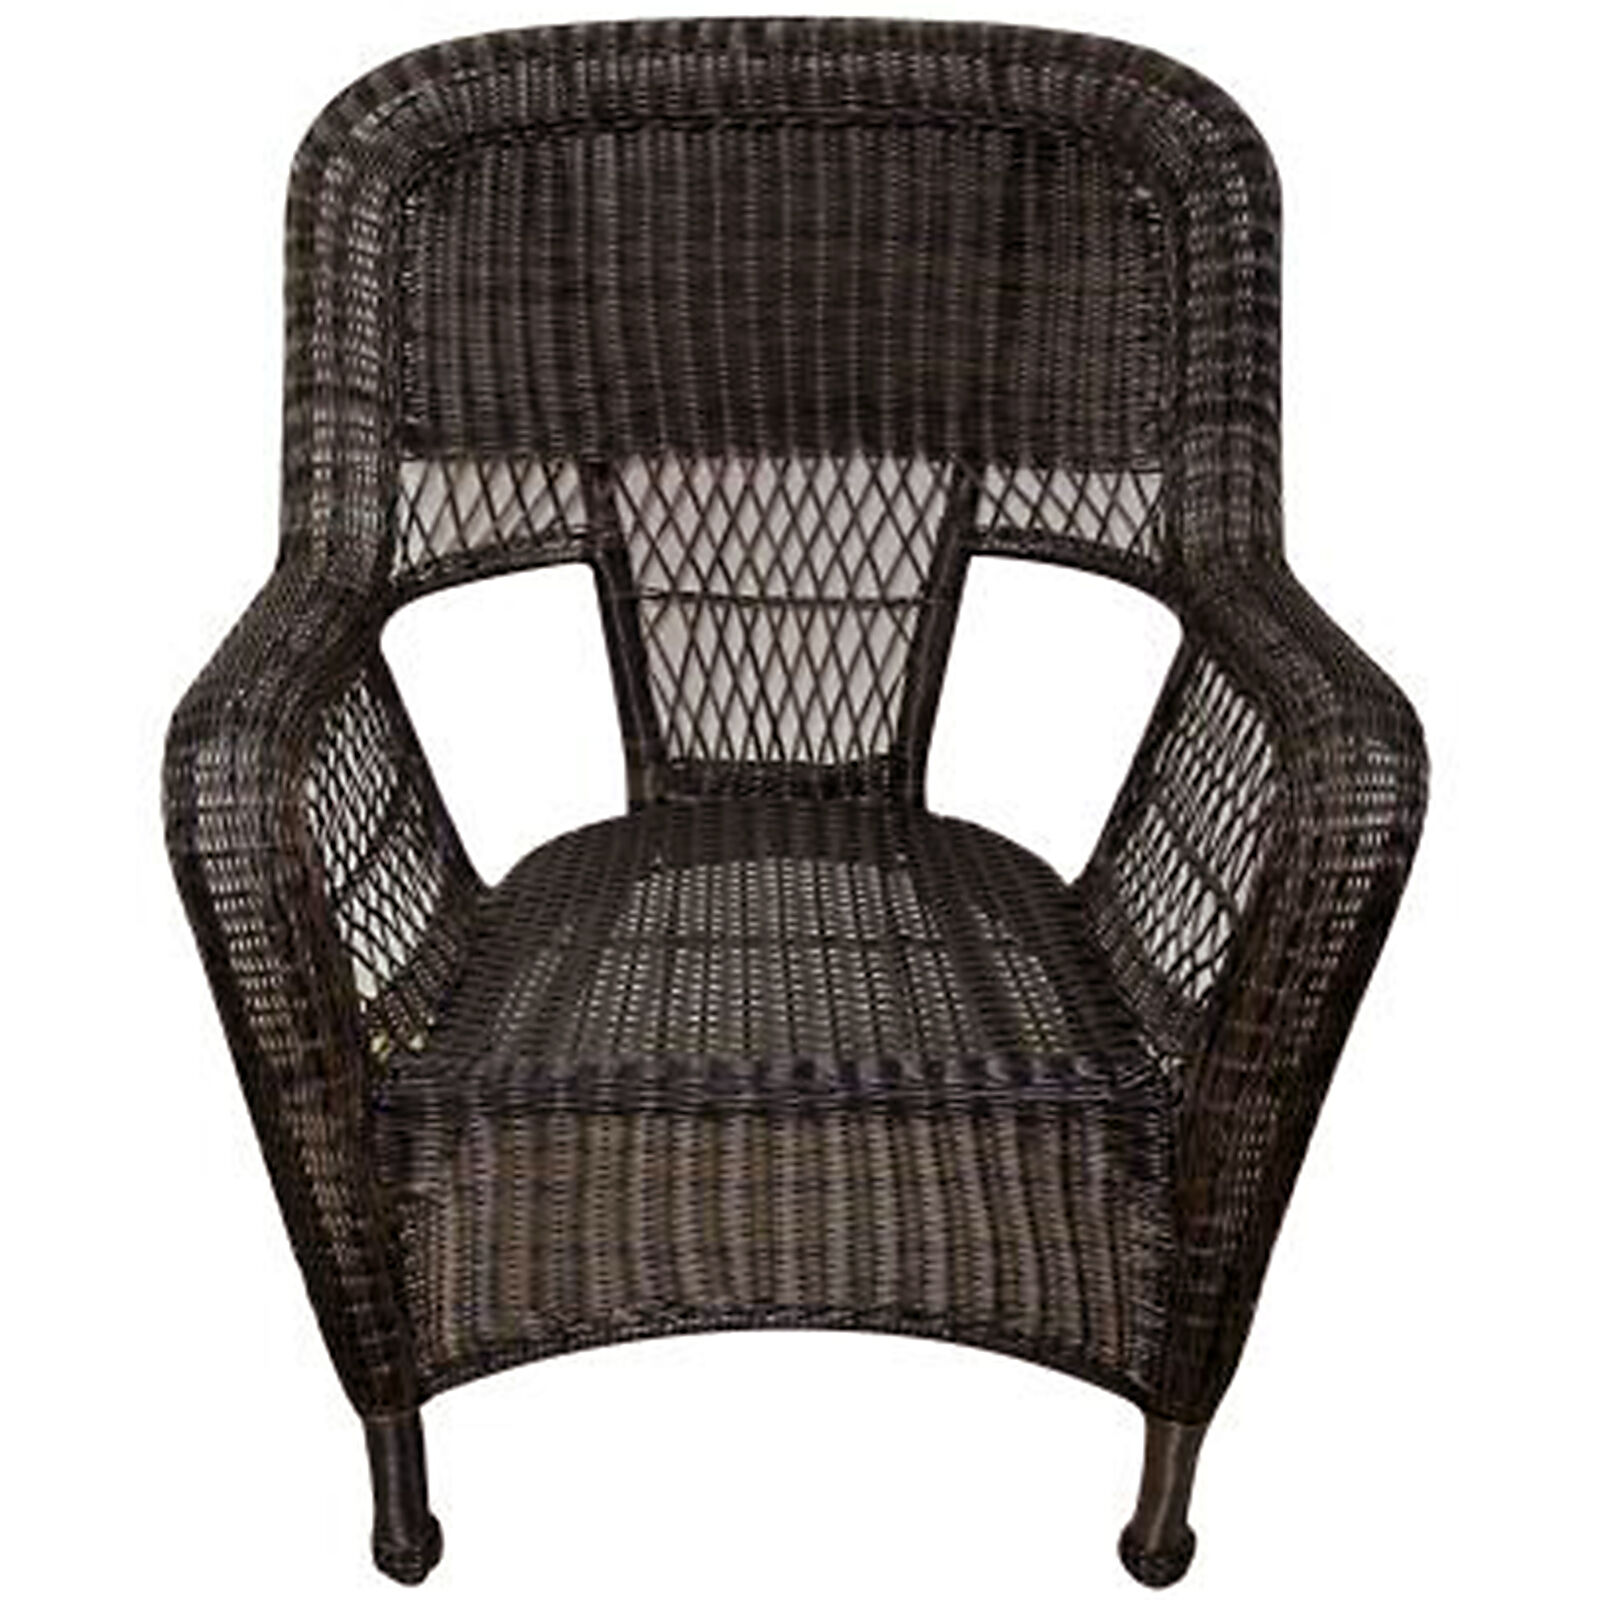 At Home Chairs Dark Brown Wicker Chair